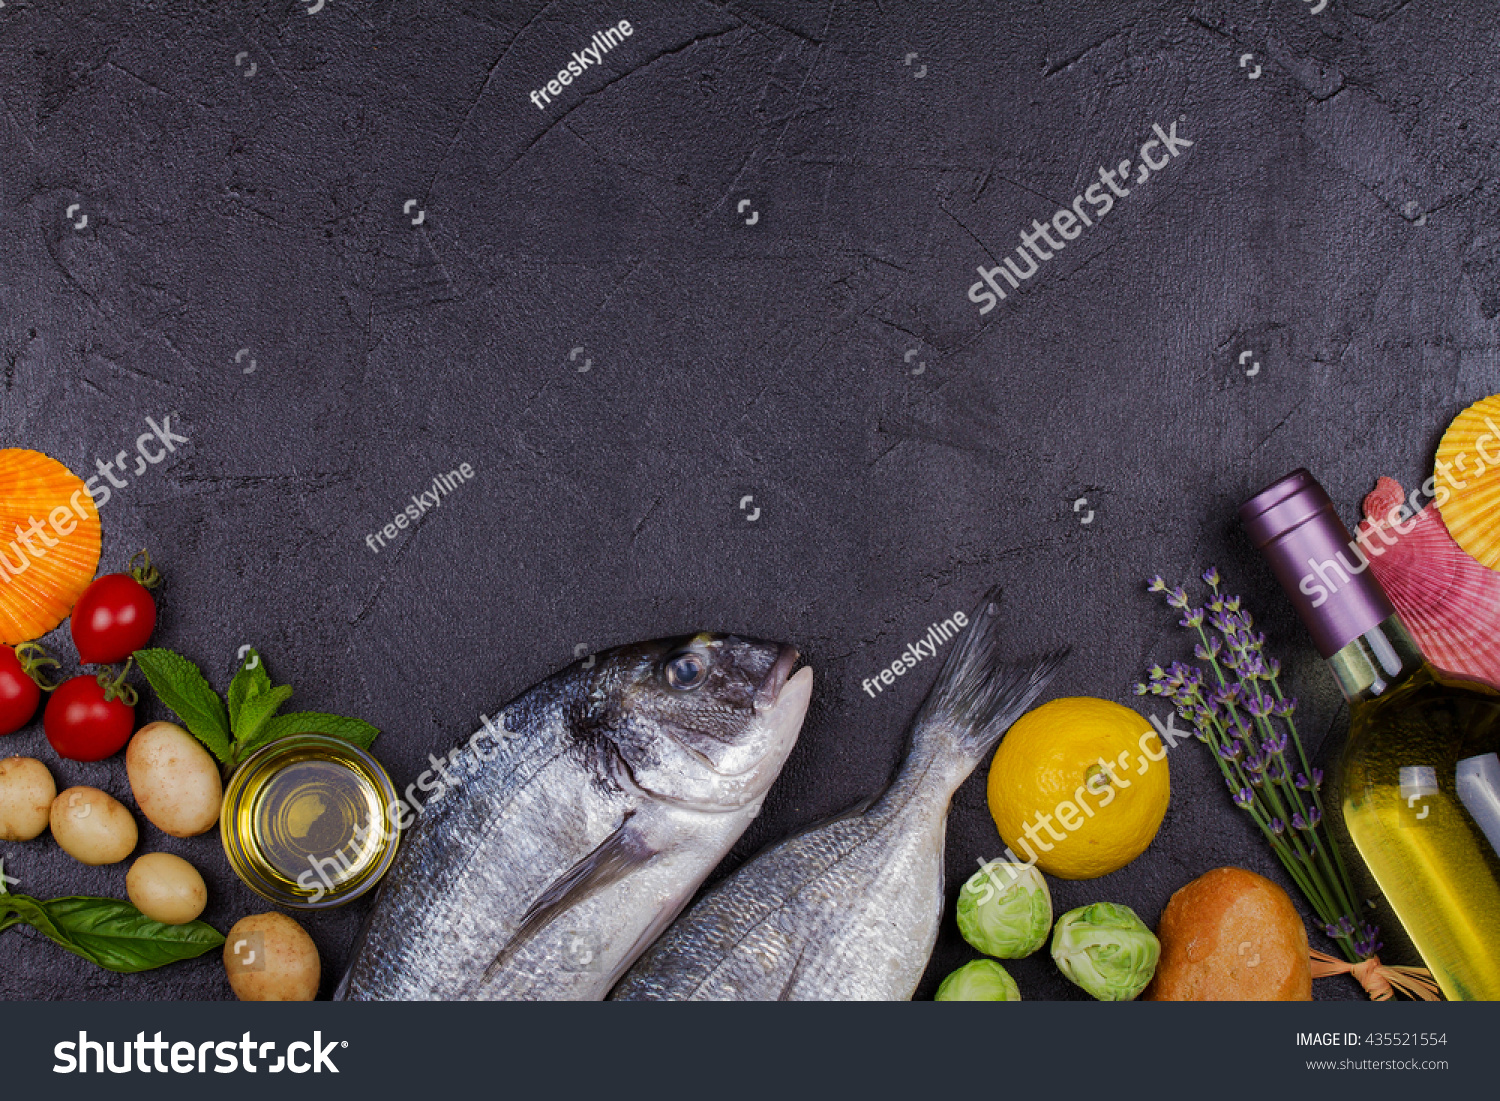 Raw fresh dorado fish brussels sprouts stock photo for Best wine with fish